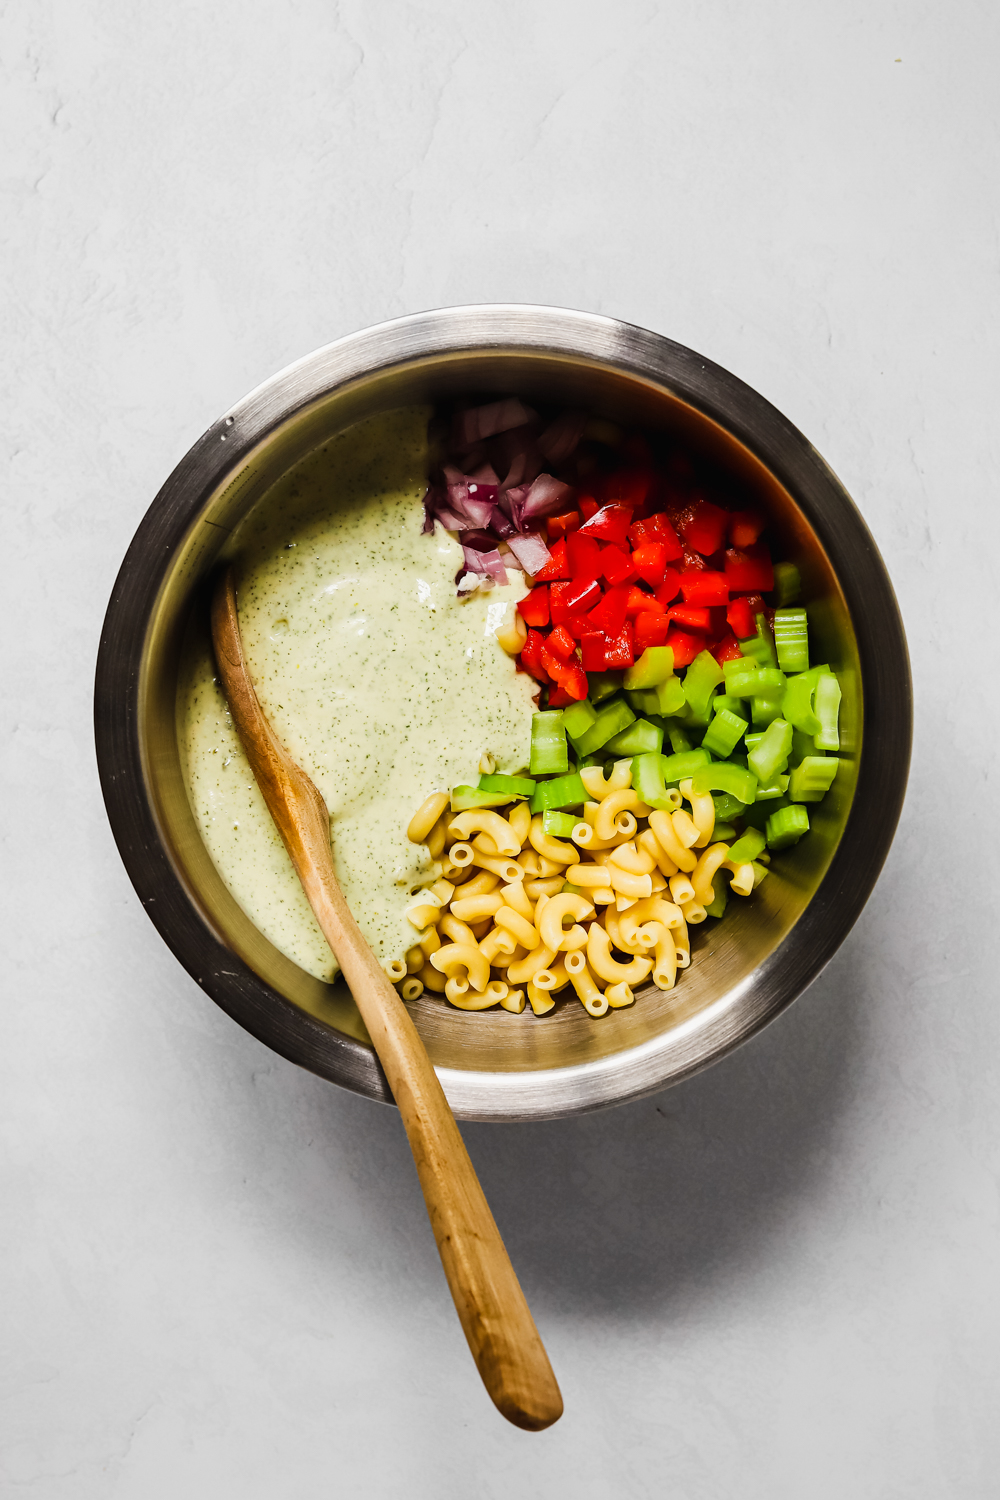 Elbow noodles, celery, red bell pepper, red onions, and mac salad sauce in a metal bowl with a wooden spoon.